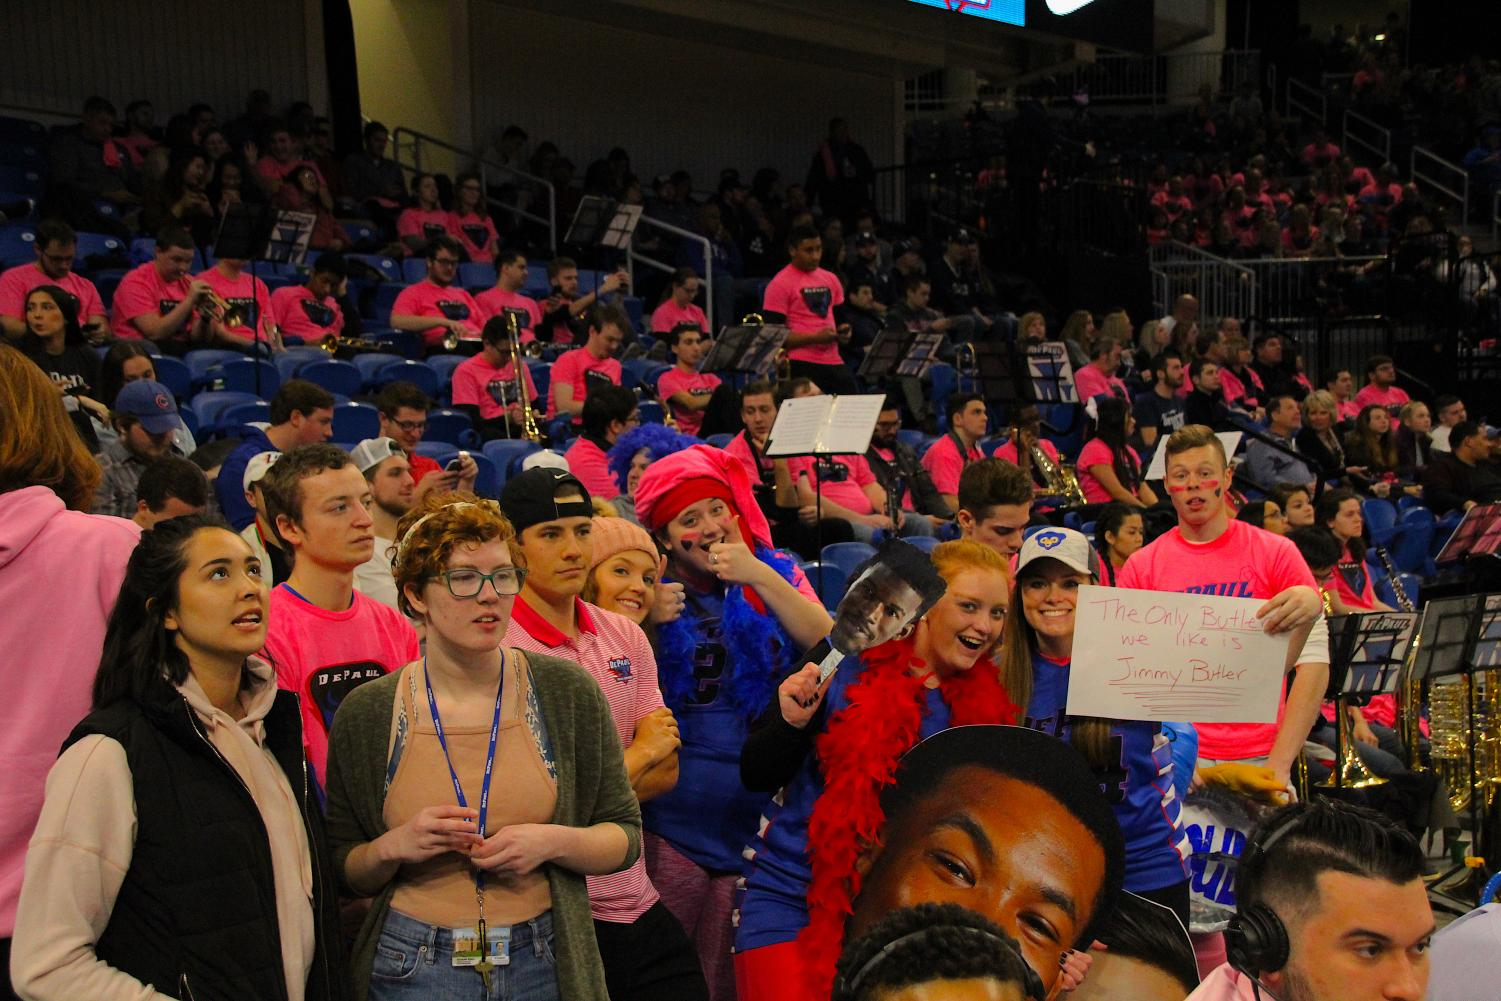 DePaul's student attendance has grown in the move to Wintrust, but growth relative to low attendance numbers at Allstate isn't going to fill the Demon Deck anytime soon.  (Richard Bodee | The DePaulia)